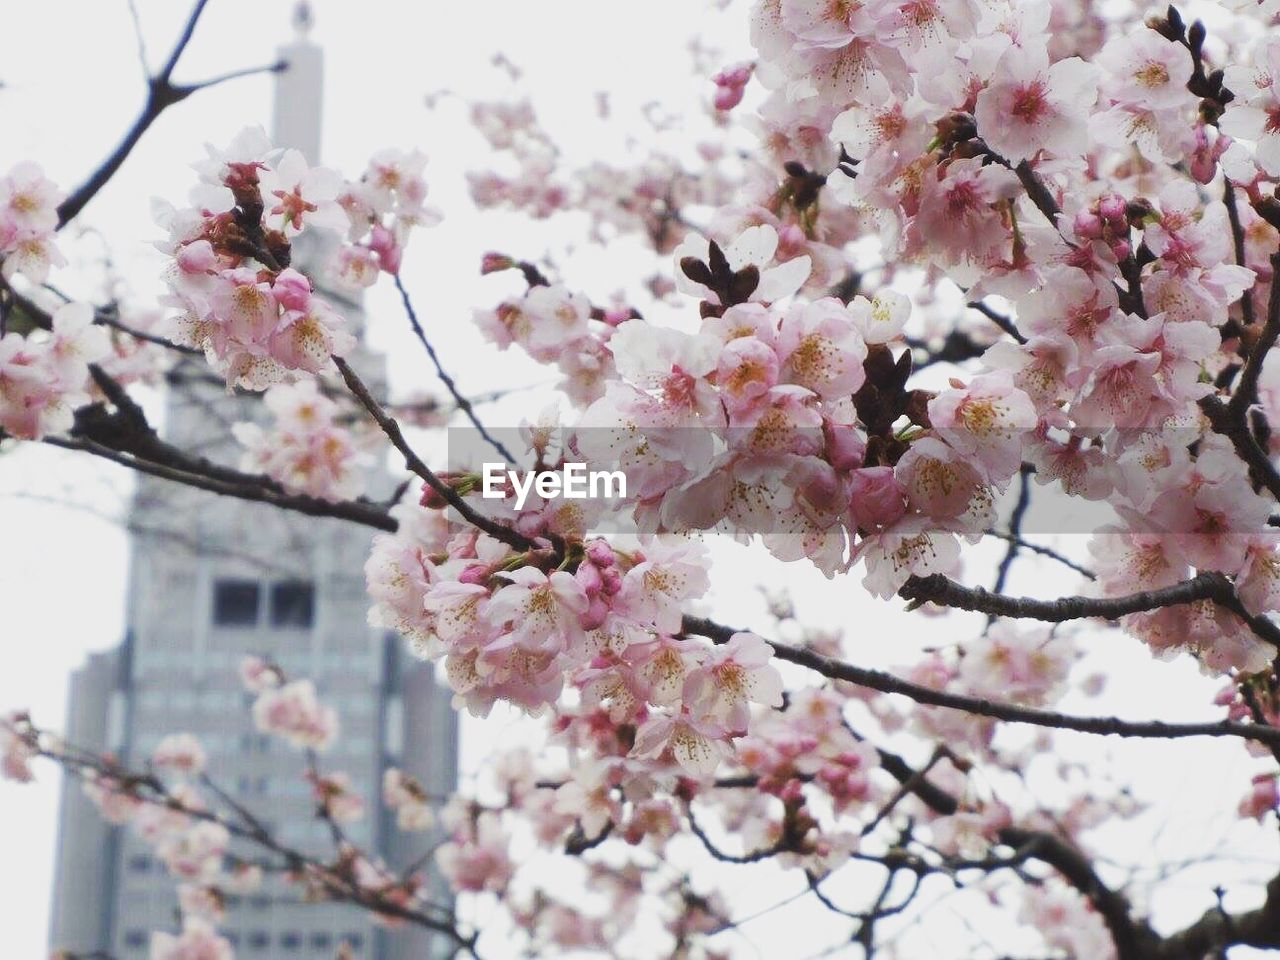 flower, cherry blossom, blossom, fragility, springtime, cherry tree, pink color, tree, growth, beauty in nature, branch, freshness, apple blossom, nature, botany, day, apple tree, no people, twig, low angle view, orchard, outdoors, petal, plum blossom, close-up, focus on foreground, blooming, flower head, building exterior, architecture, sky